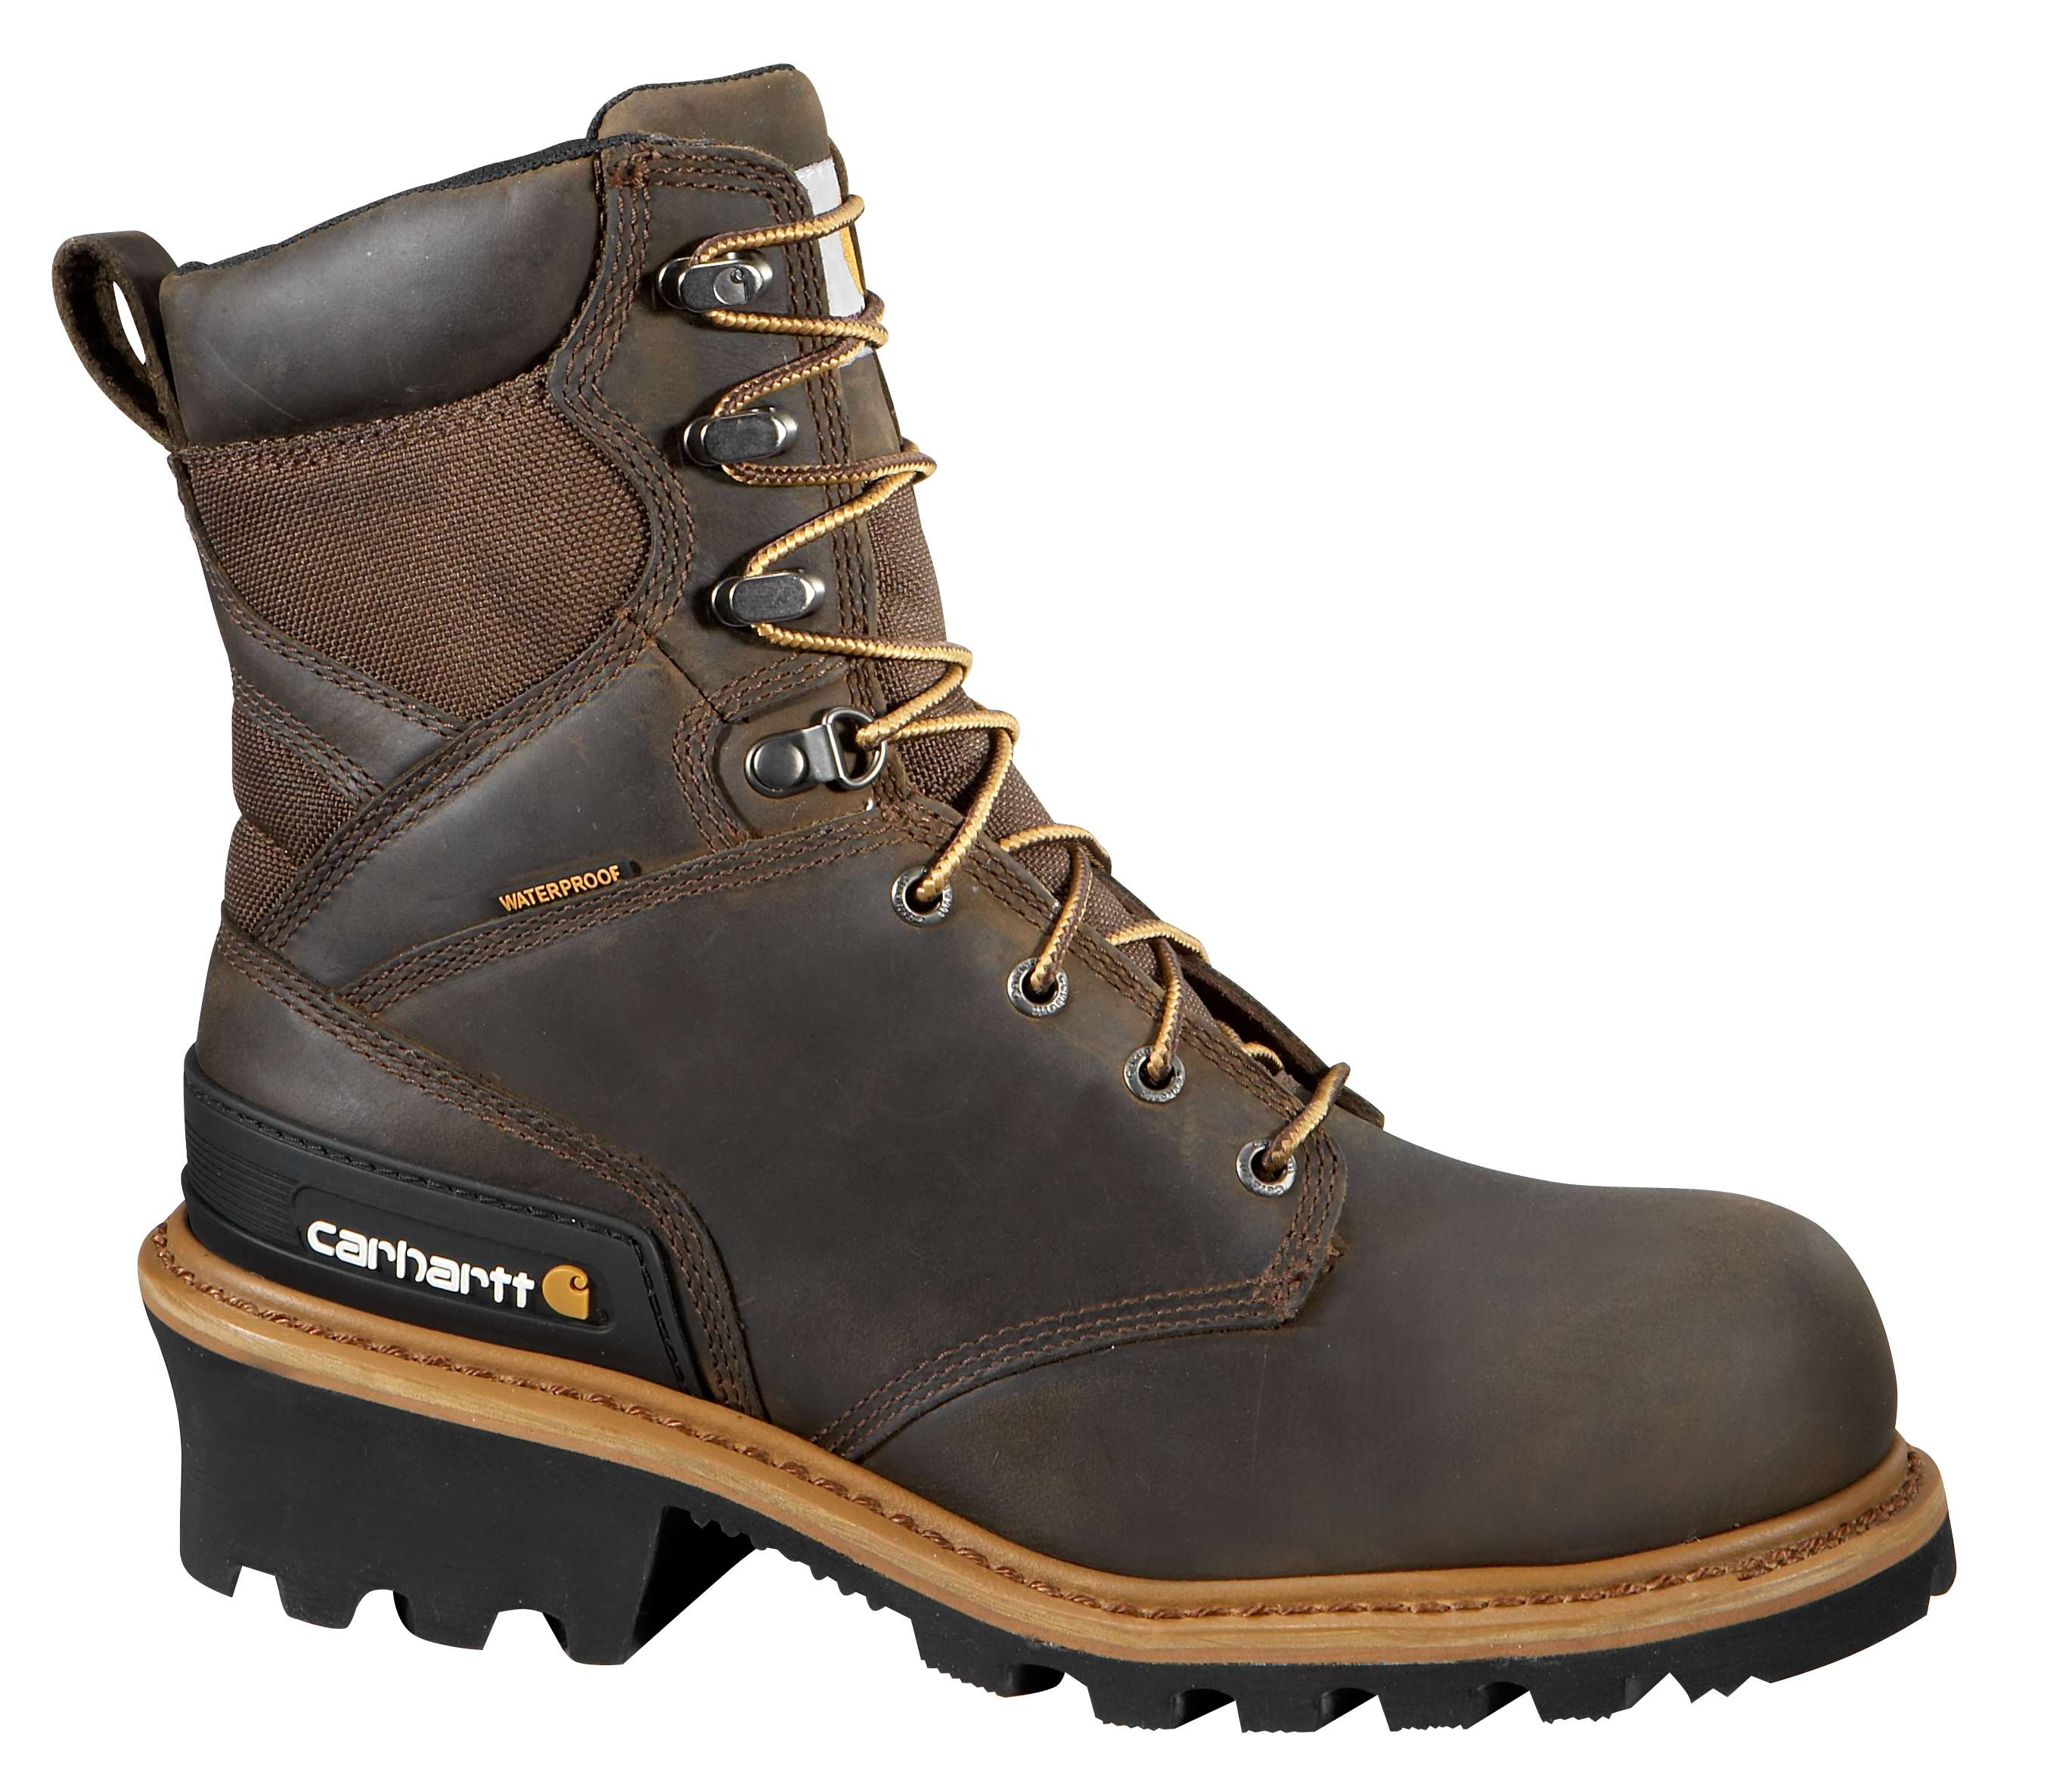 Carhartt 8-inch Vintage Saddle Non Safety Toe Logger Boot